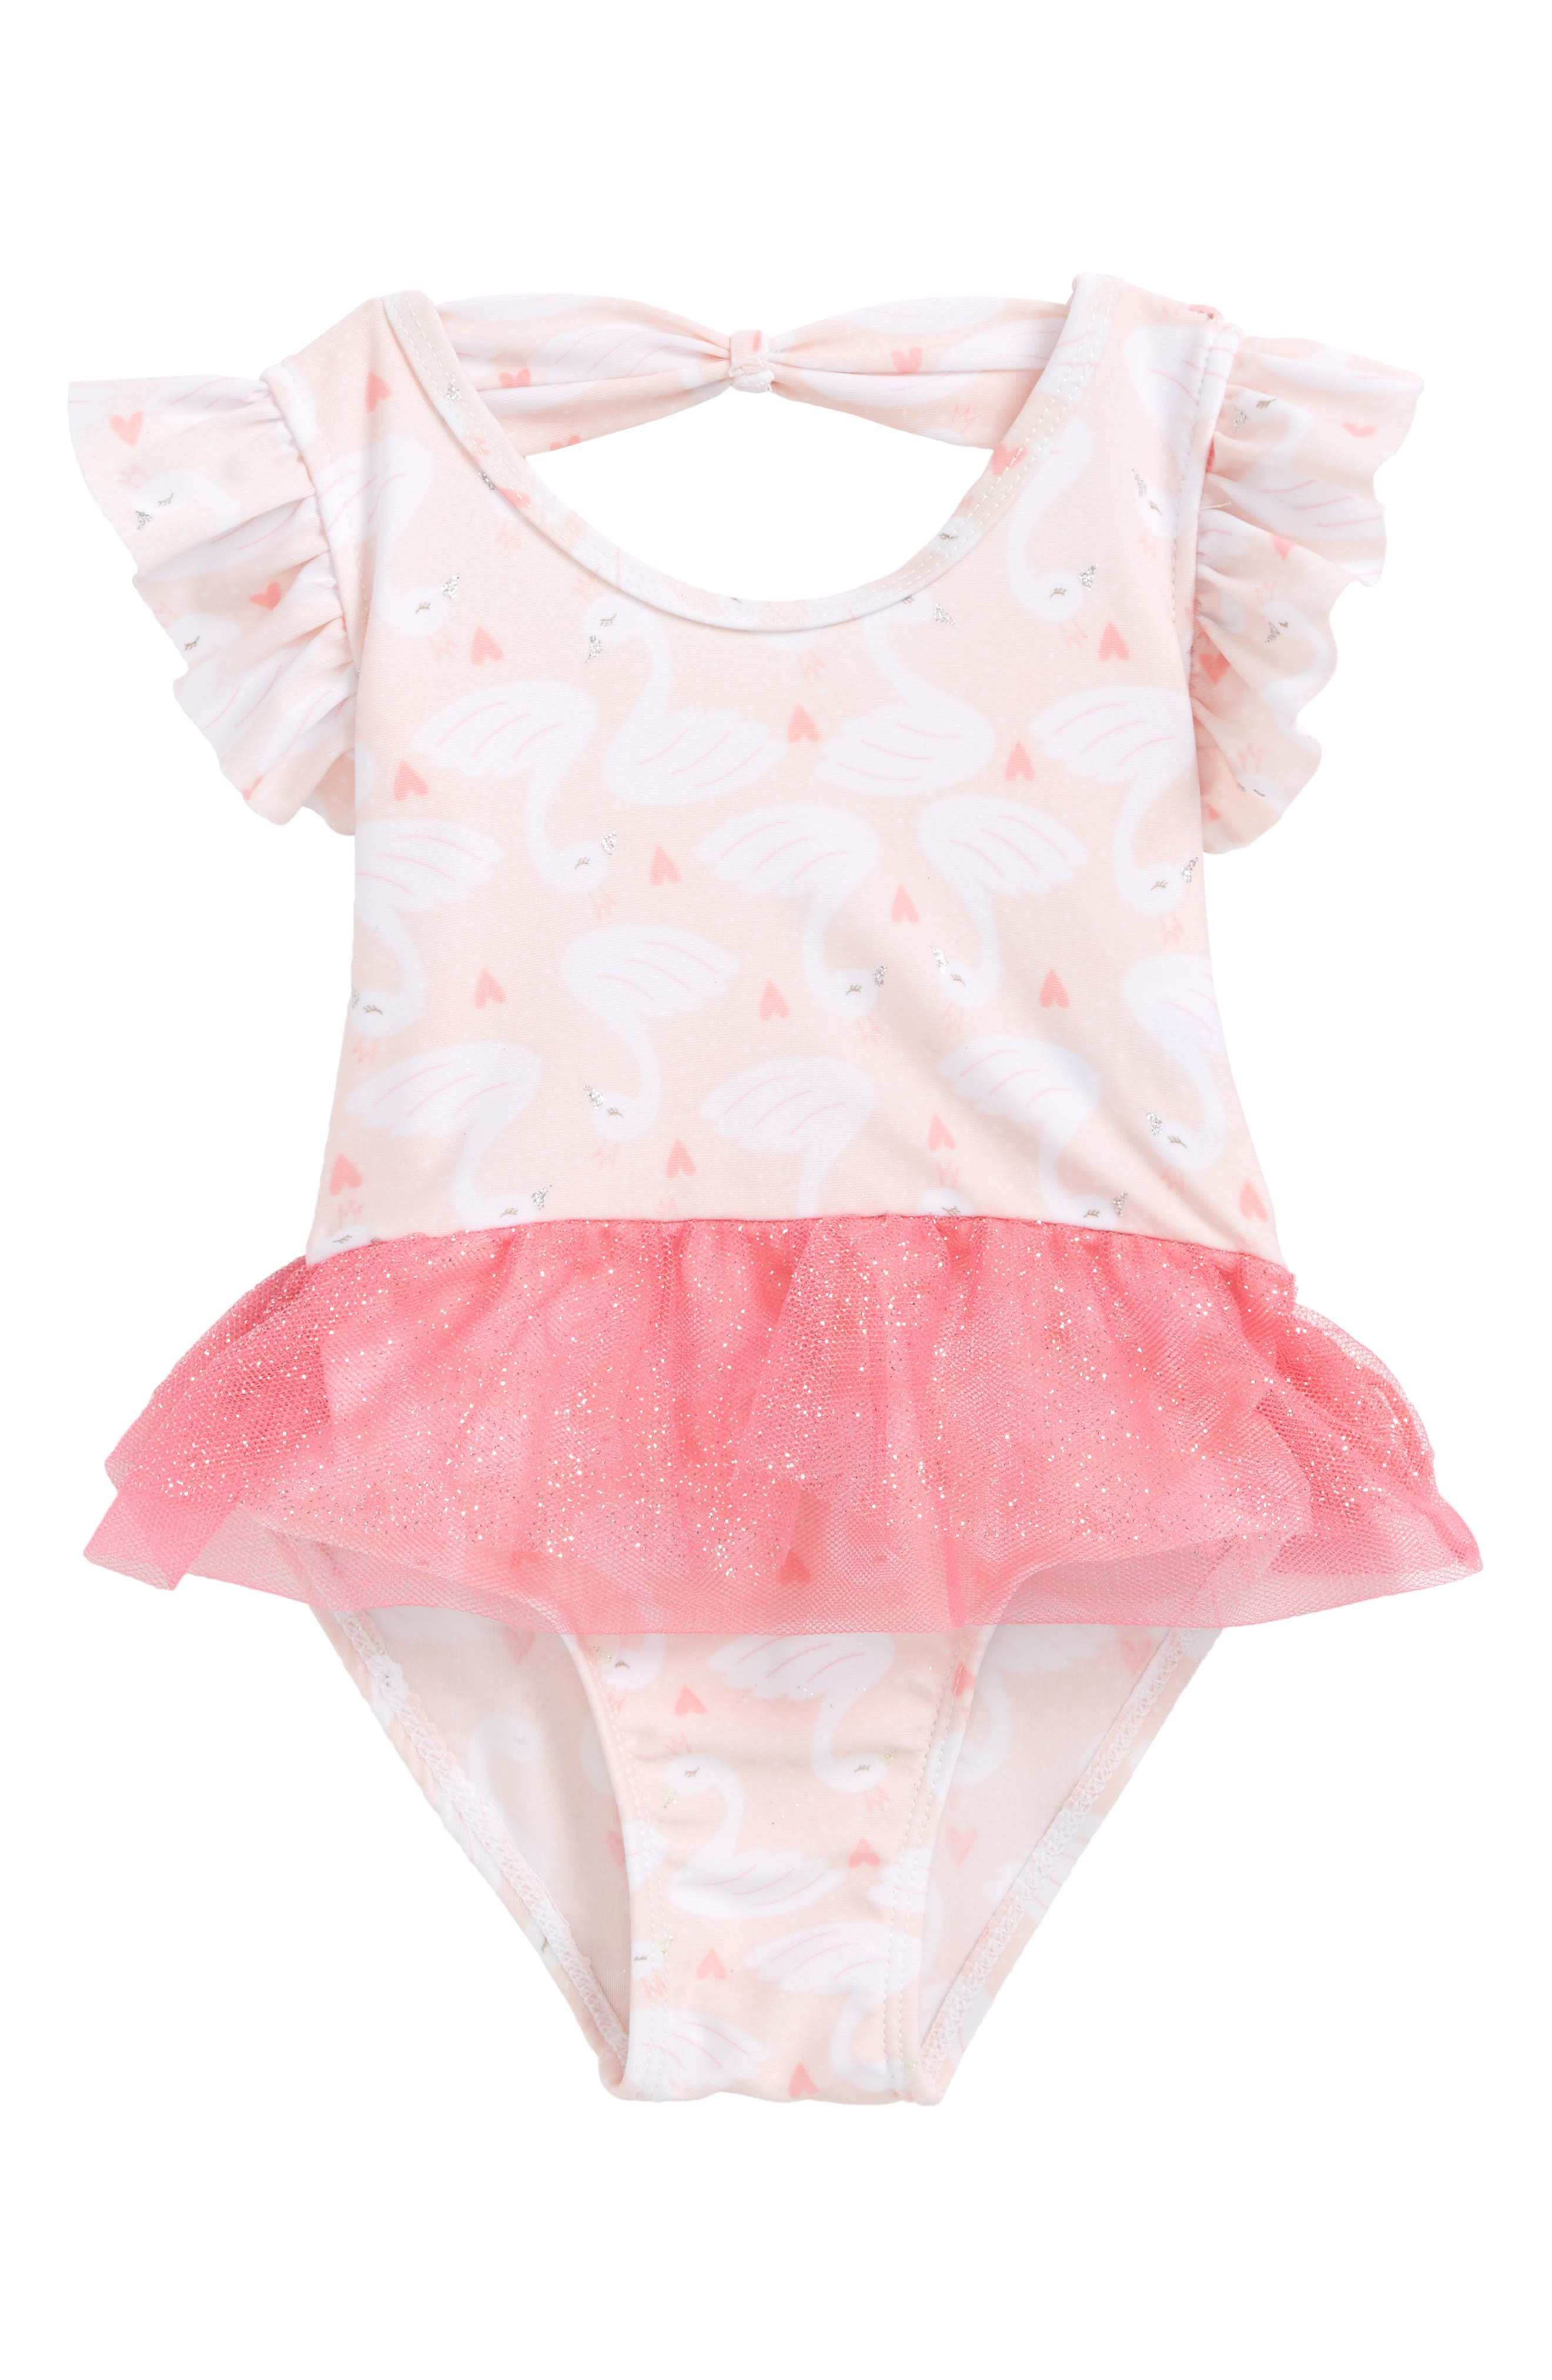 Alternate Image 1 Selected - Sol Swim Princess Swan One-Piece Swimsuit (Baby Girls)